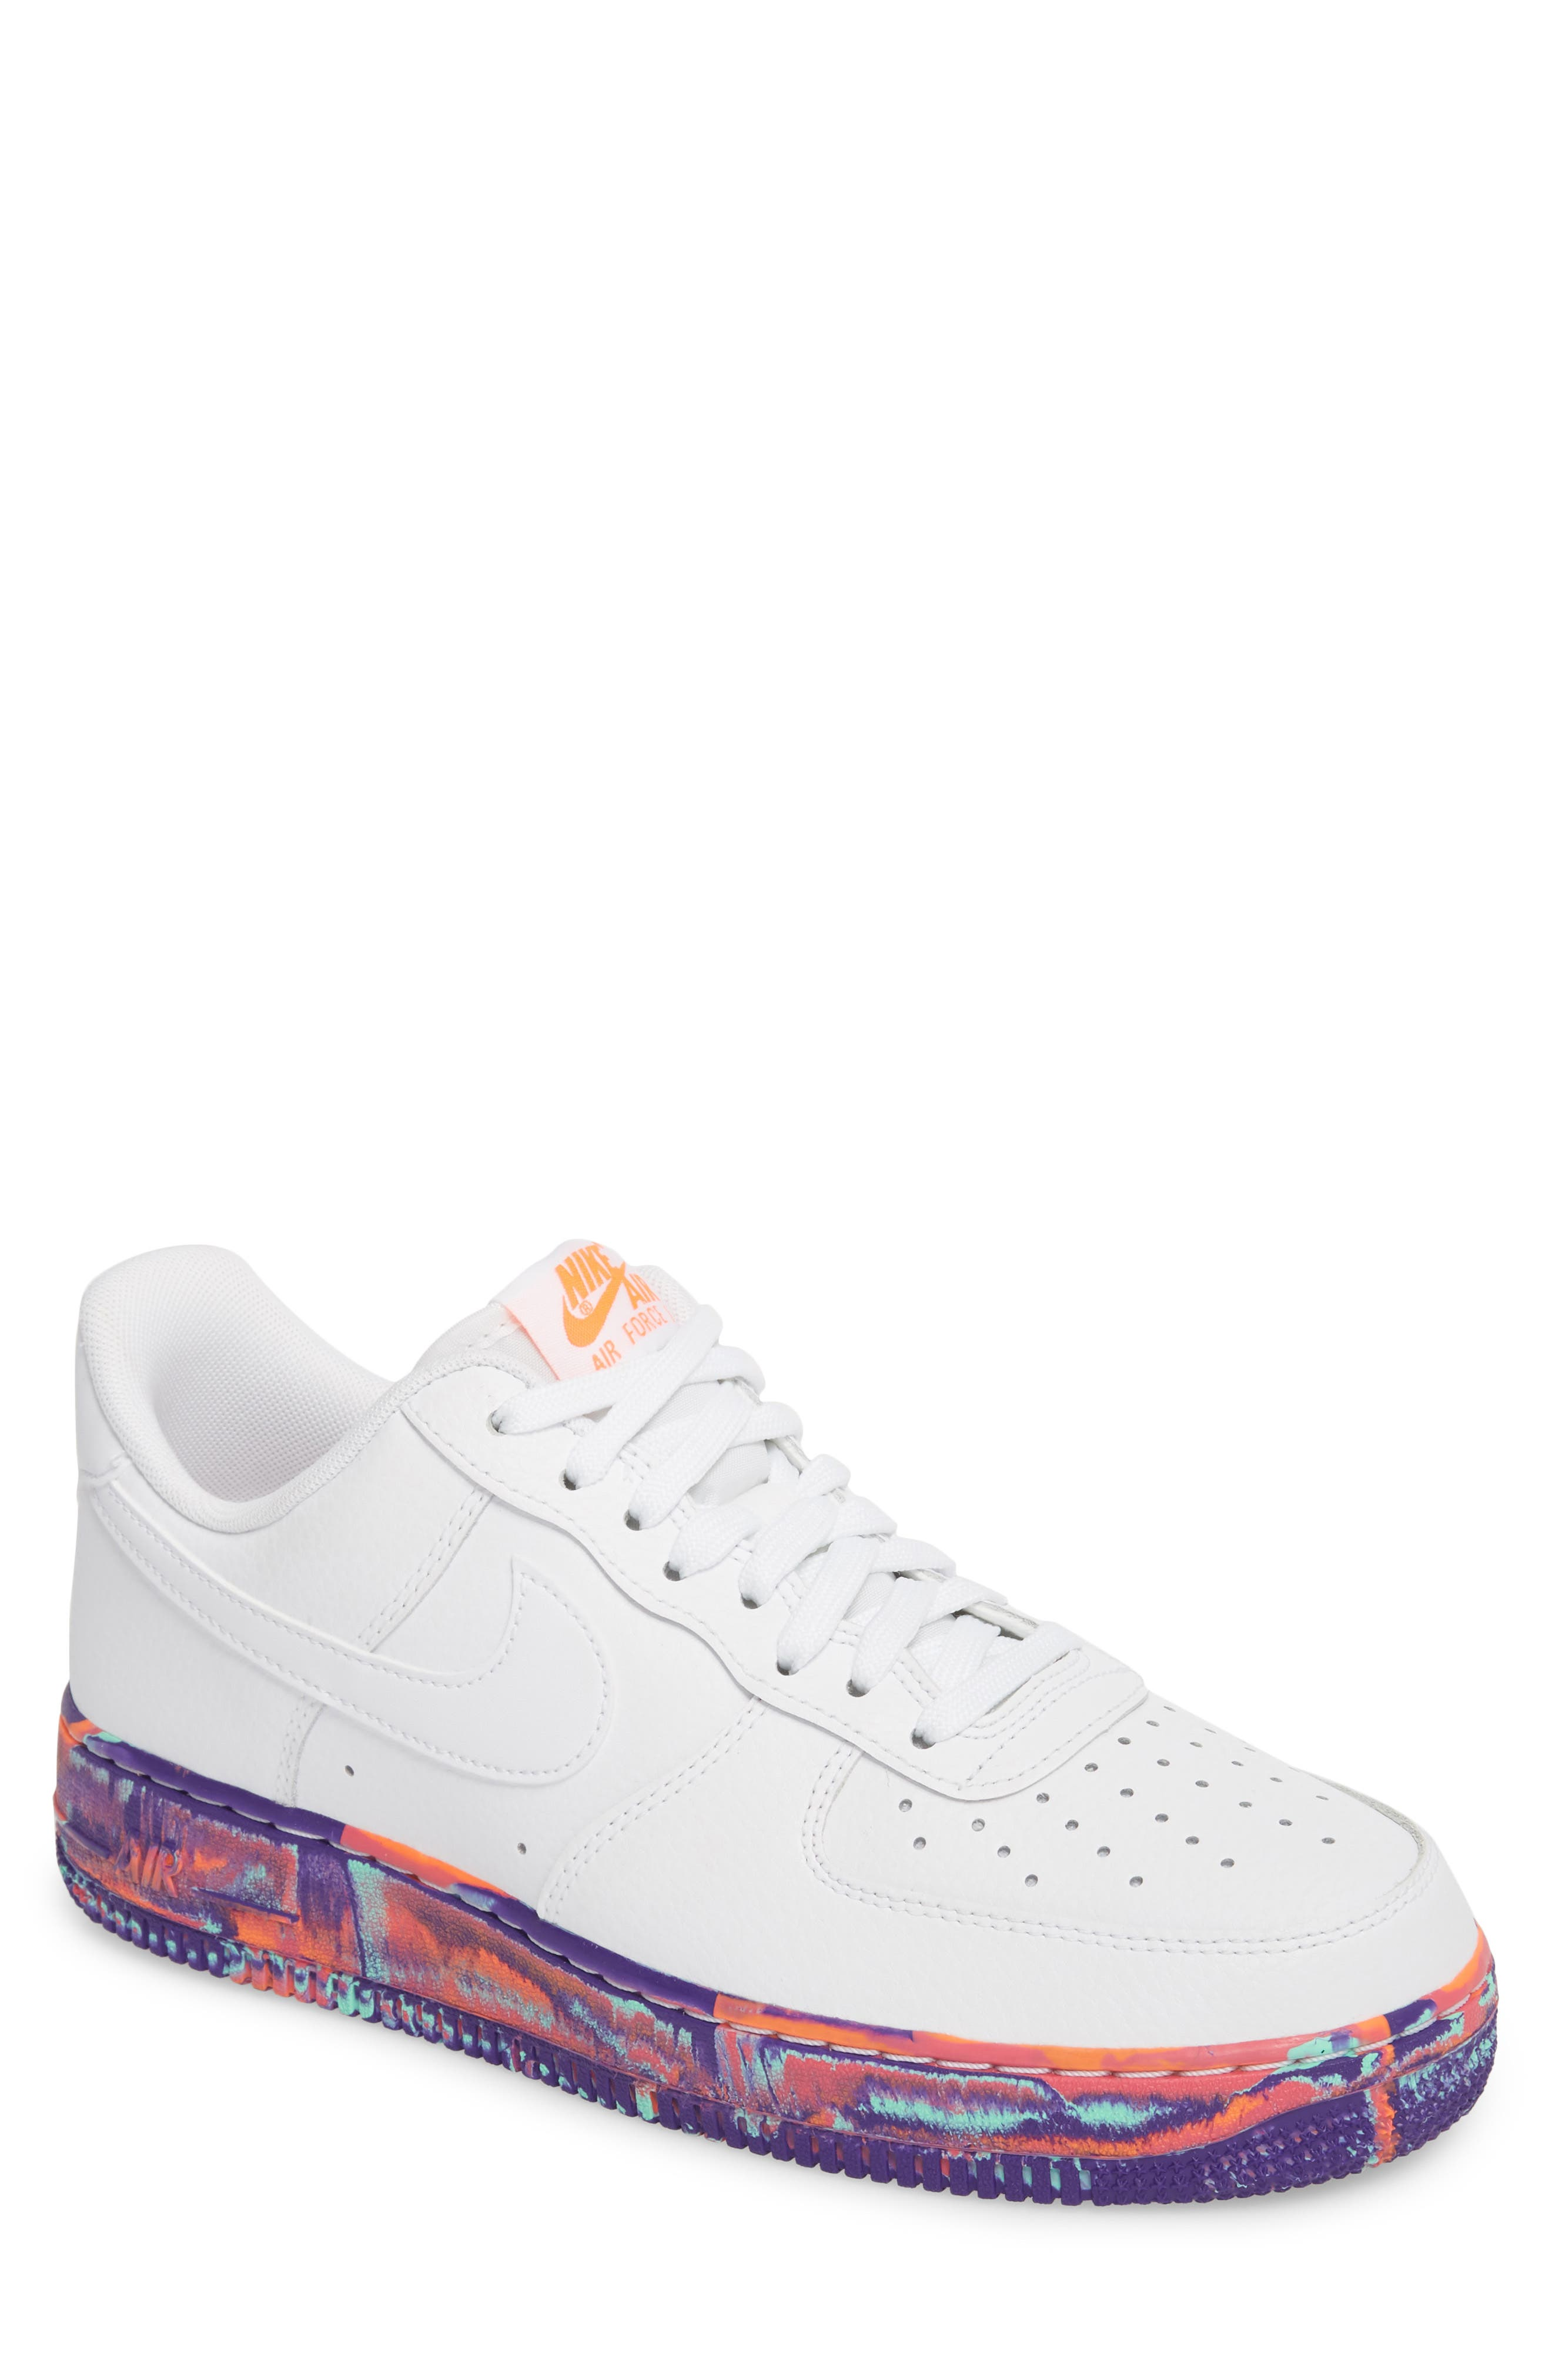 Nike Lv8 Air Force 1 '07 Lv8 Nike Leather zapatilla Hombres Nordstrom b23847